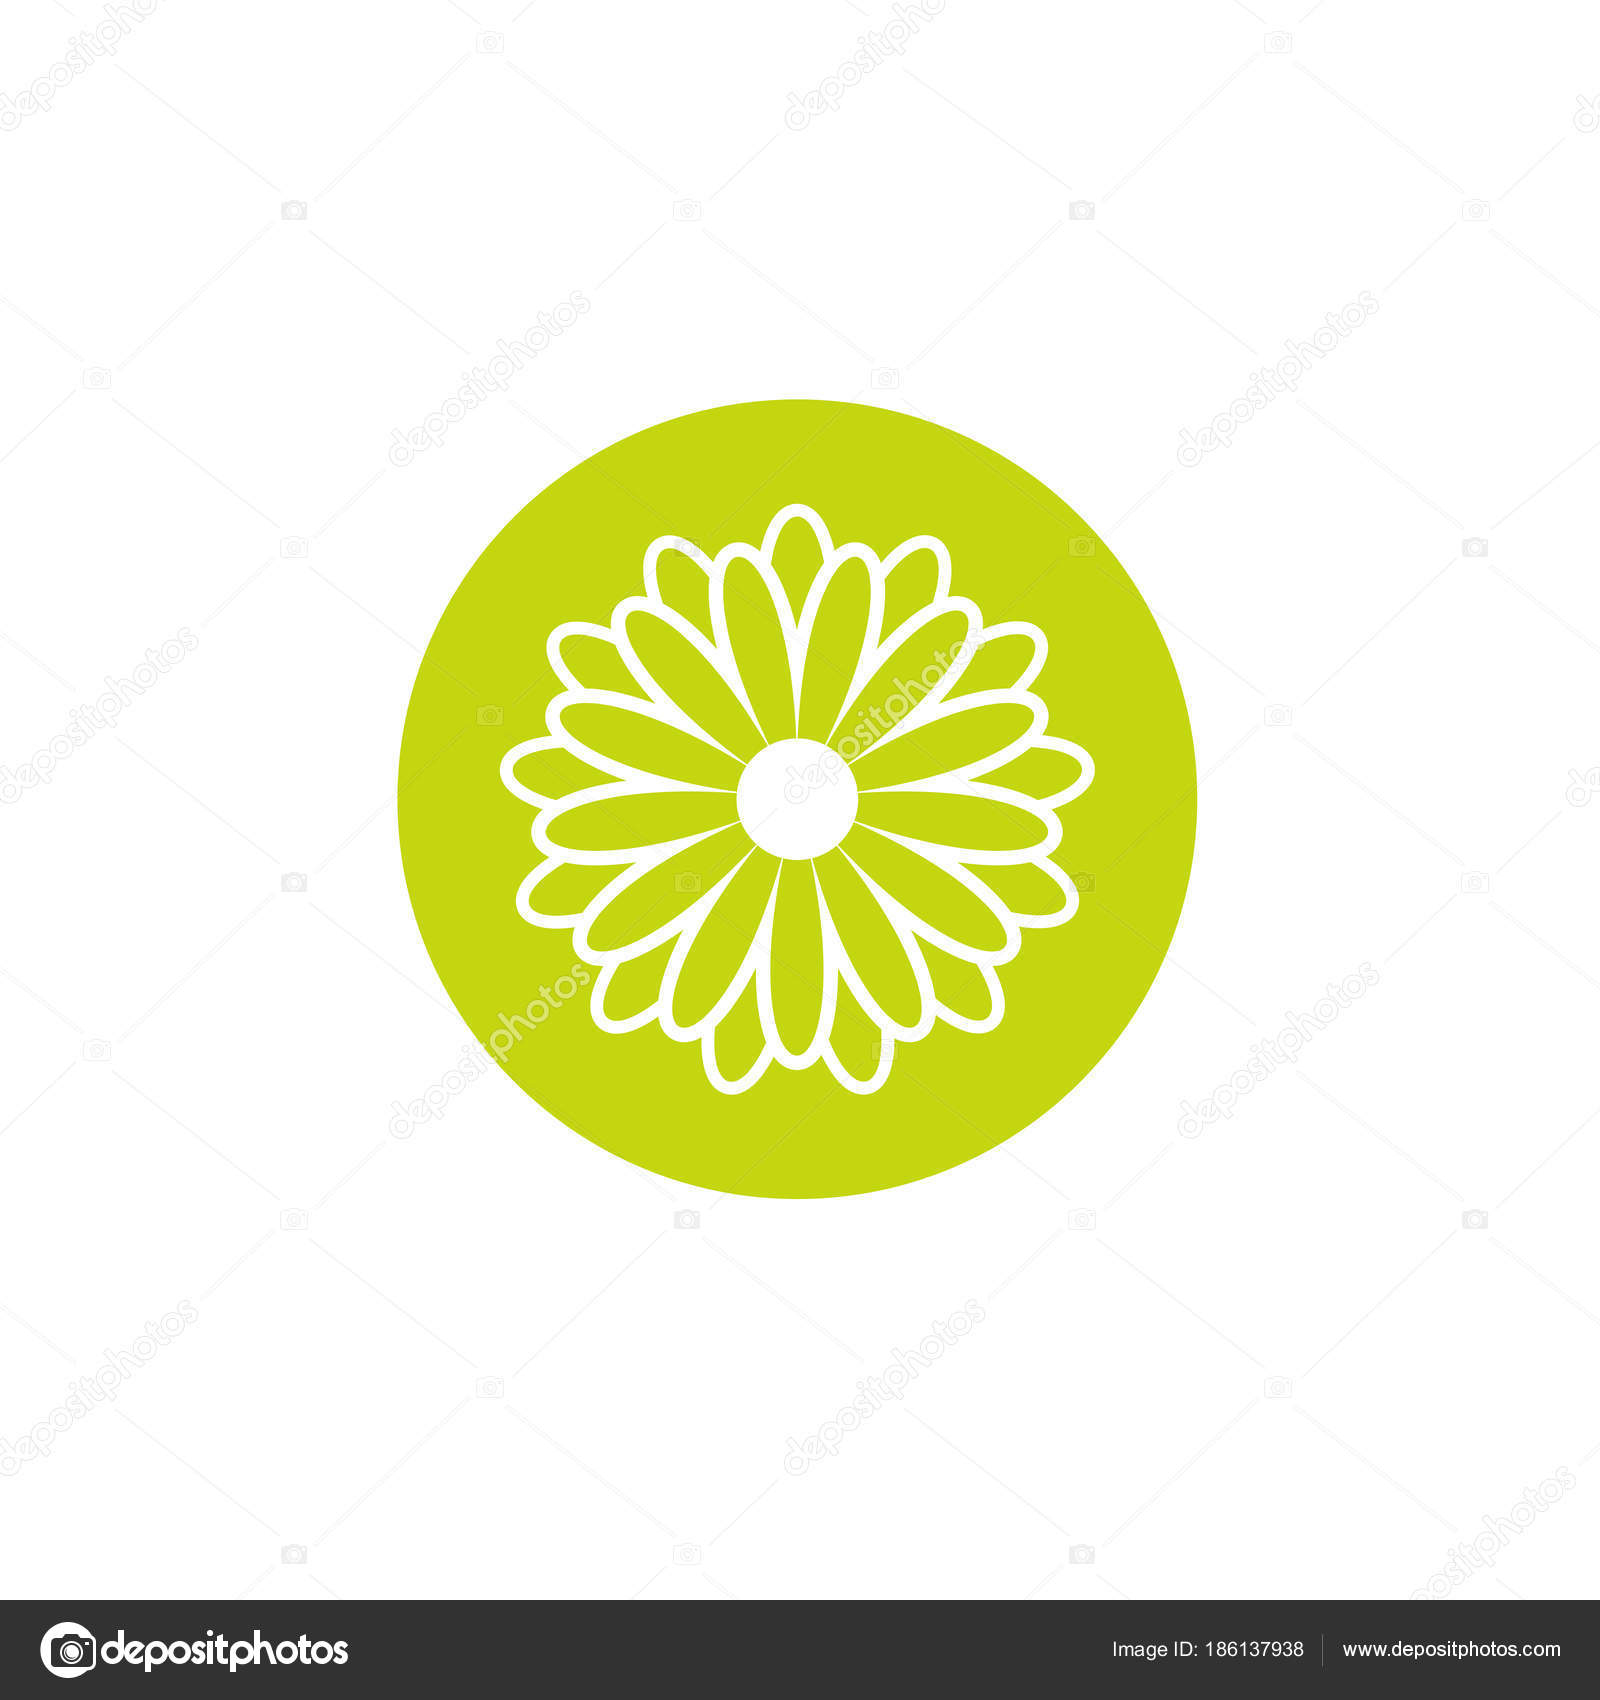 Green Flat Icon Of Chrysanthemum Flower With White Outline In Green